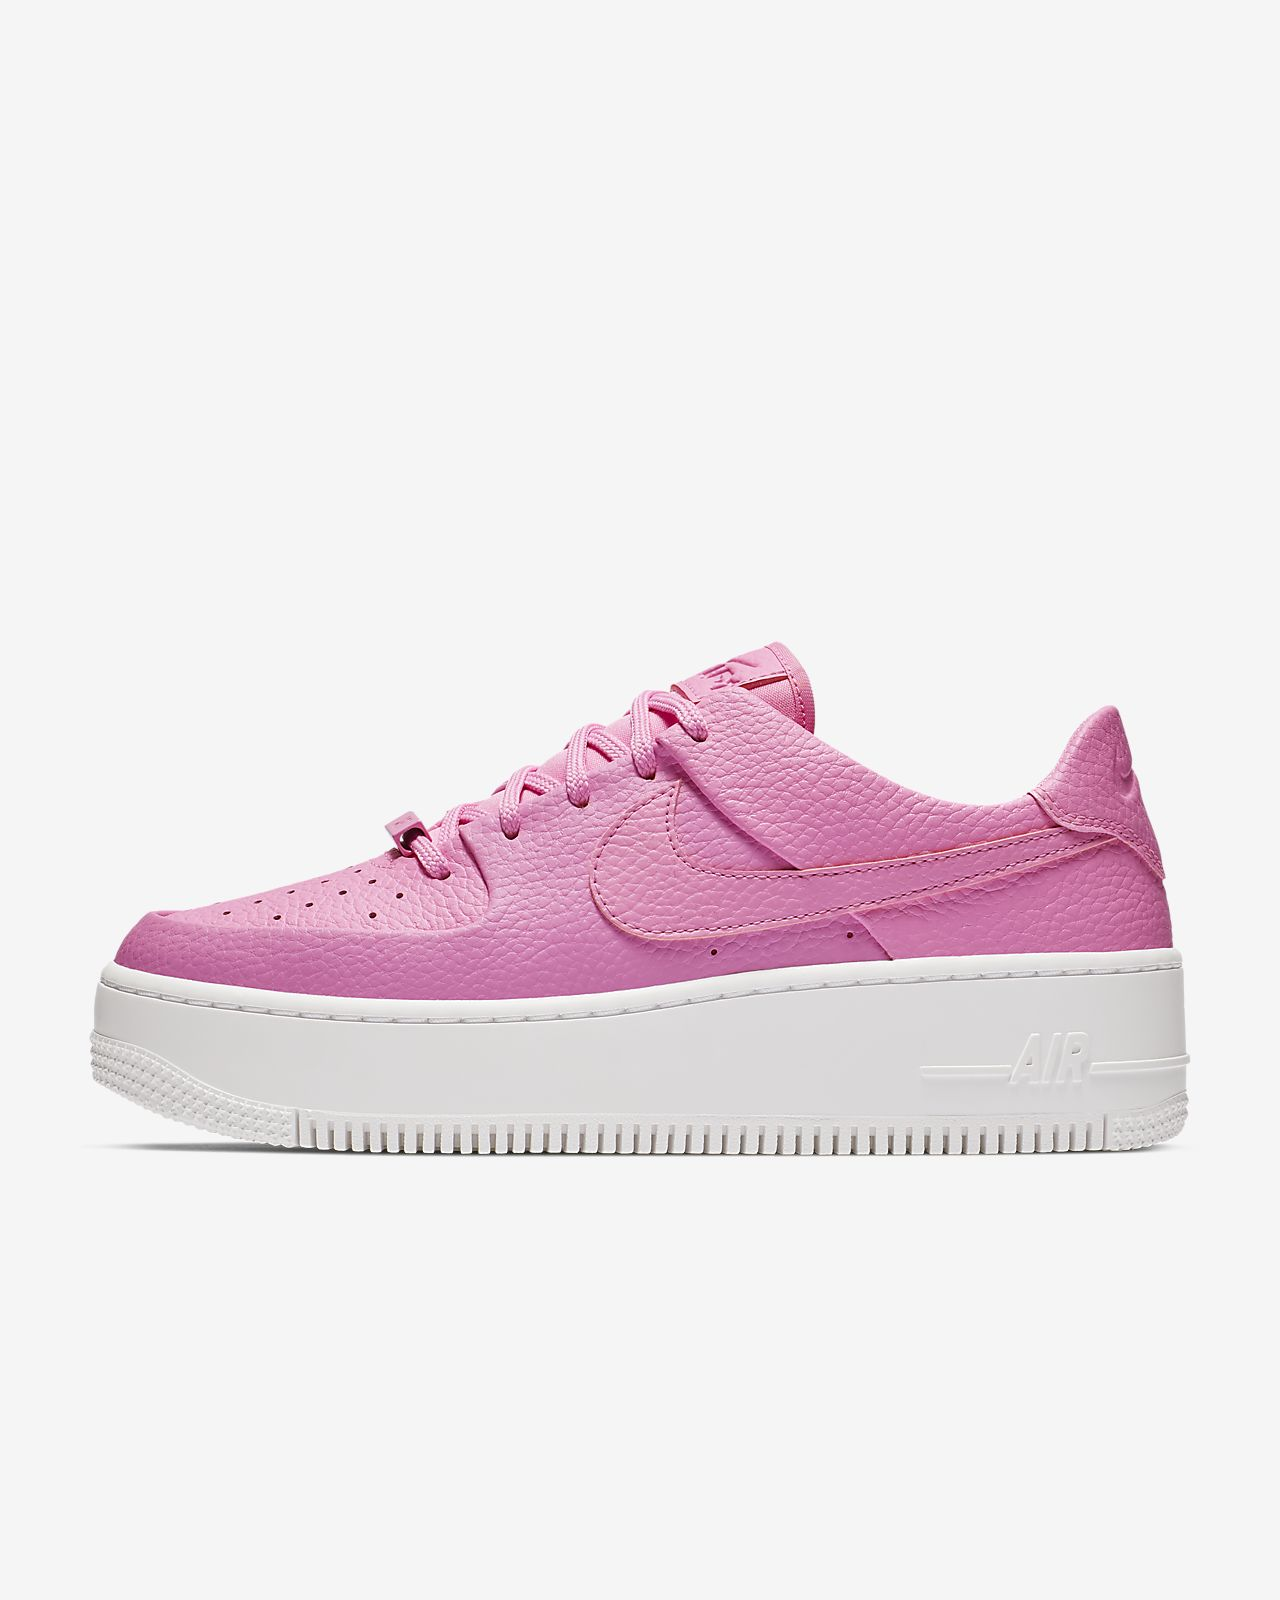 competitive price c4c9c e6379 ... Nike Air Force 1 Sage Low Women s Shoe